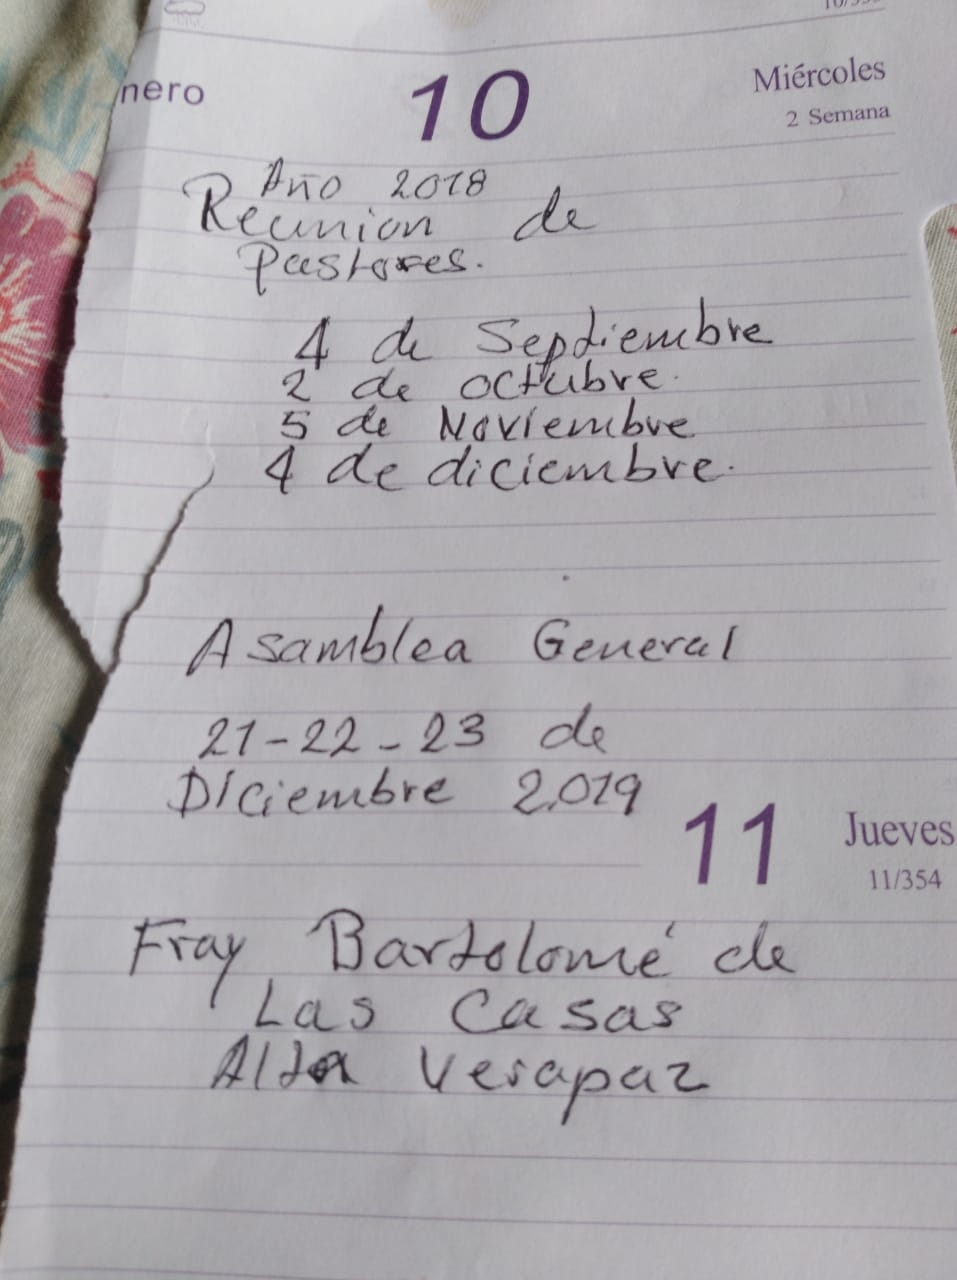 Cesar's note on some spare calendar pages inaugurated the new Kekchi association of churches and their gathering dates for pastors and leaders.